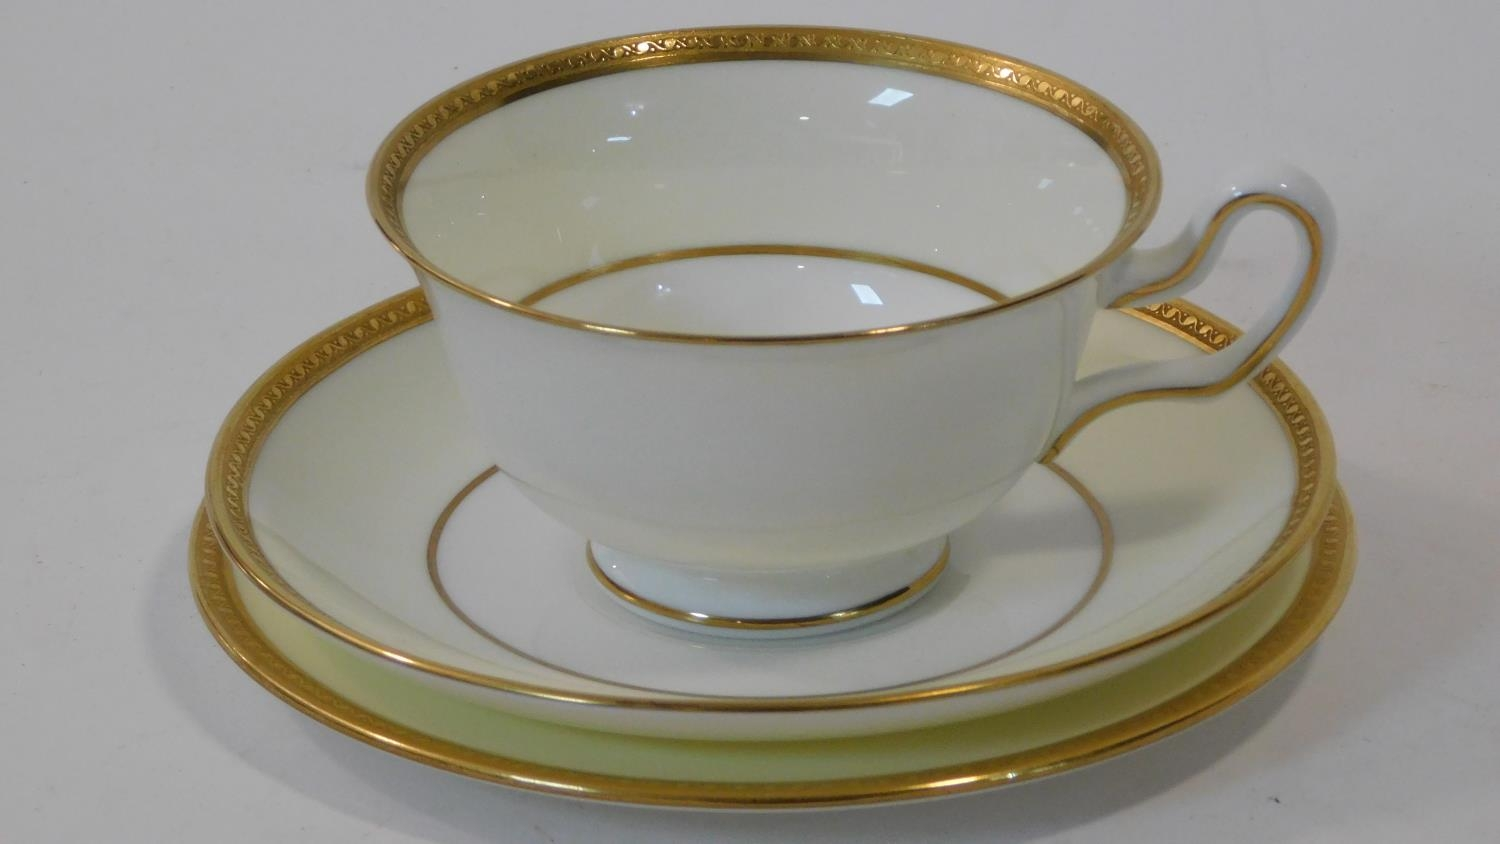 A six person part scrolling gilded design porcelain Wedgwood coffee set, pattern number W4249. - Image 4 of 12